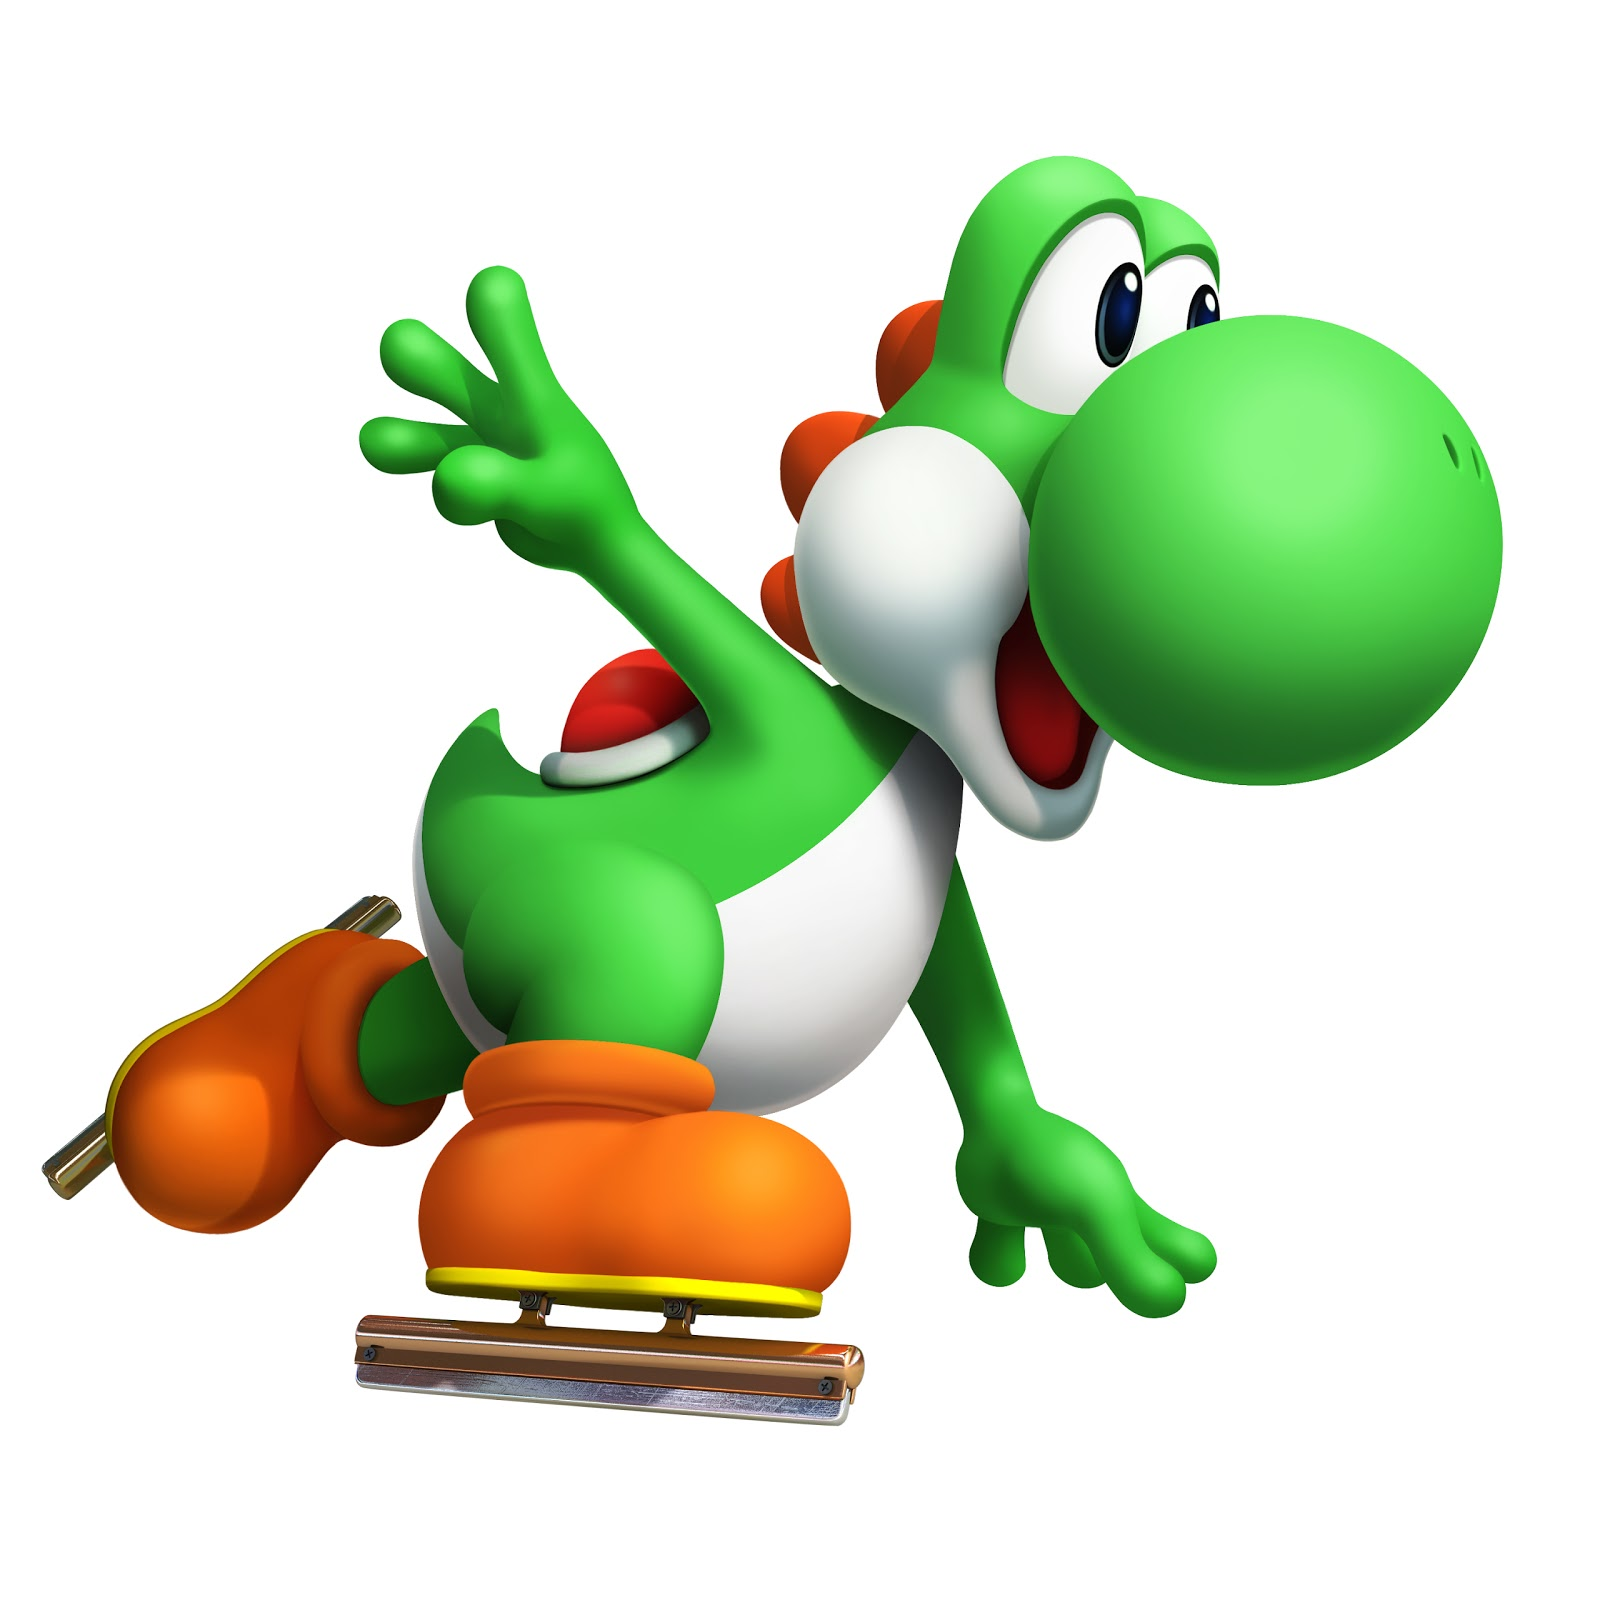 think Yoshi, that in fact is a dinosaur, is very effeminate and fits